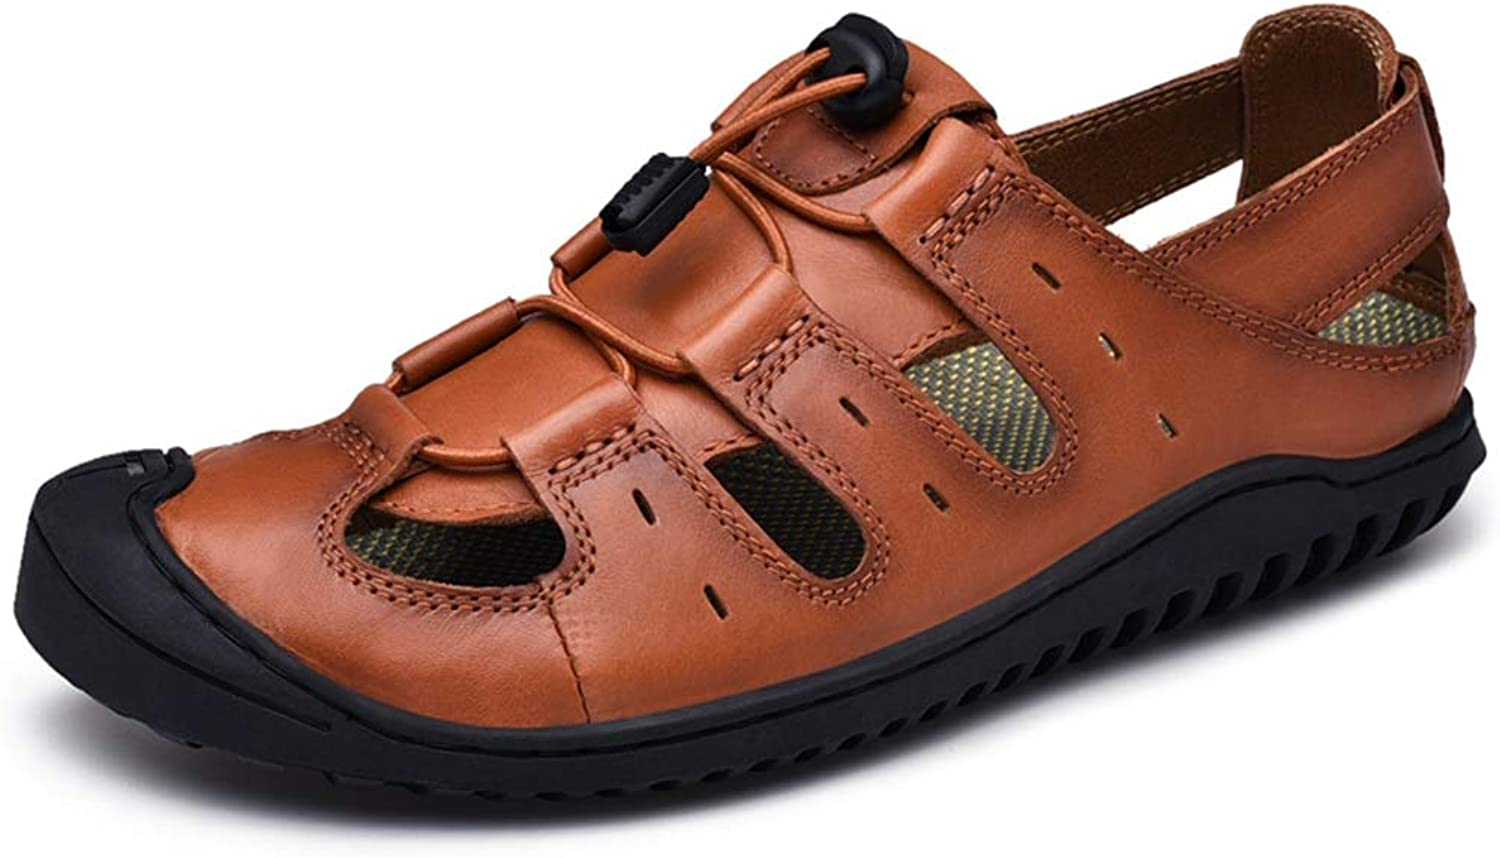 ChengxiO Outdoor Sandals Men's Summer First Layer Cowhide 2019 New Handmade Large Size Leather Casual shoes Men's Sandals Soft Cow Leather shoes (color   Brown, Size   255mm)